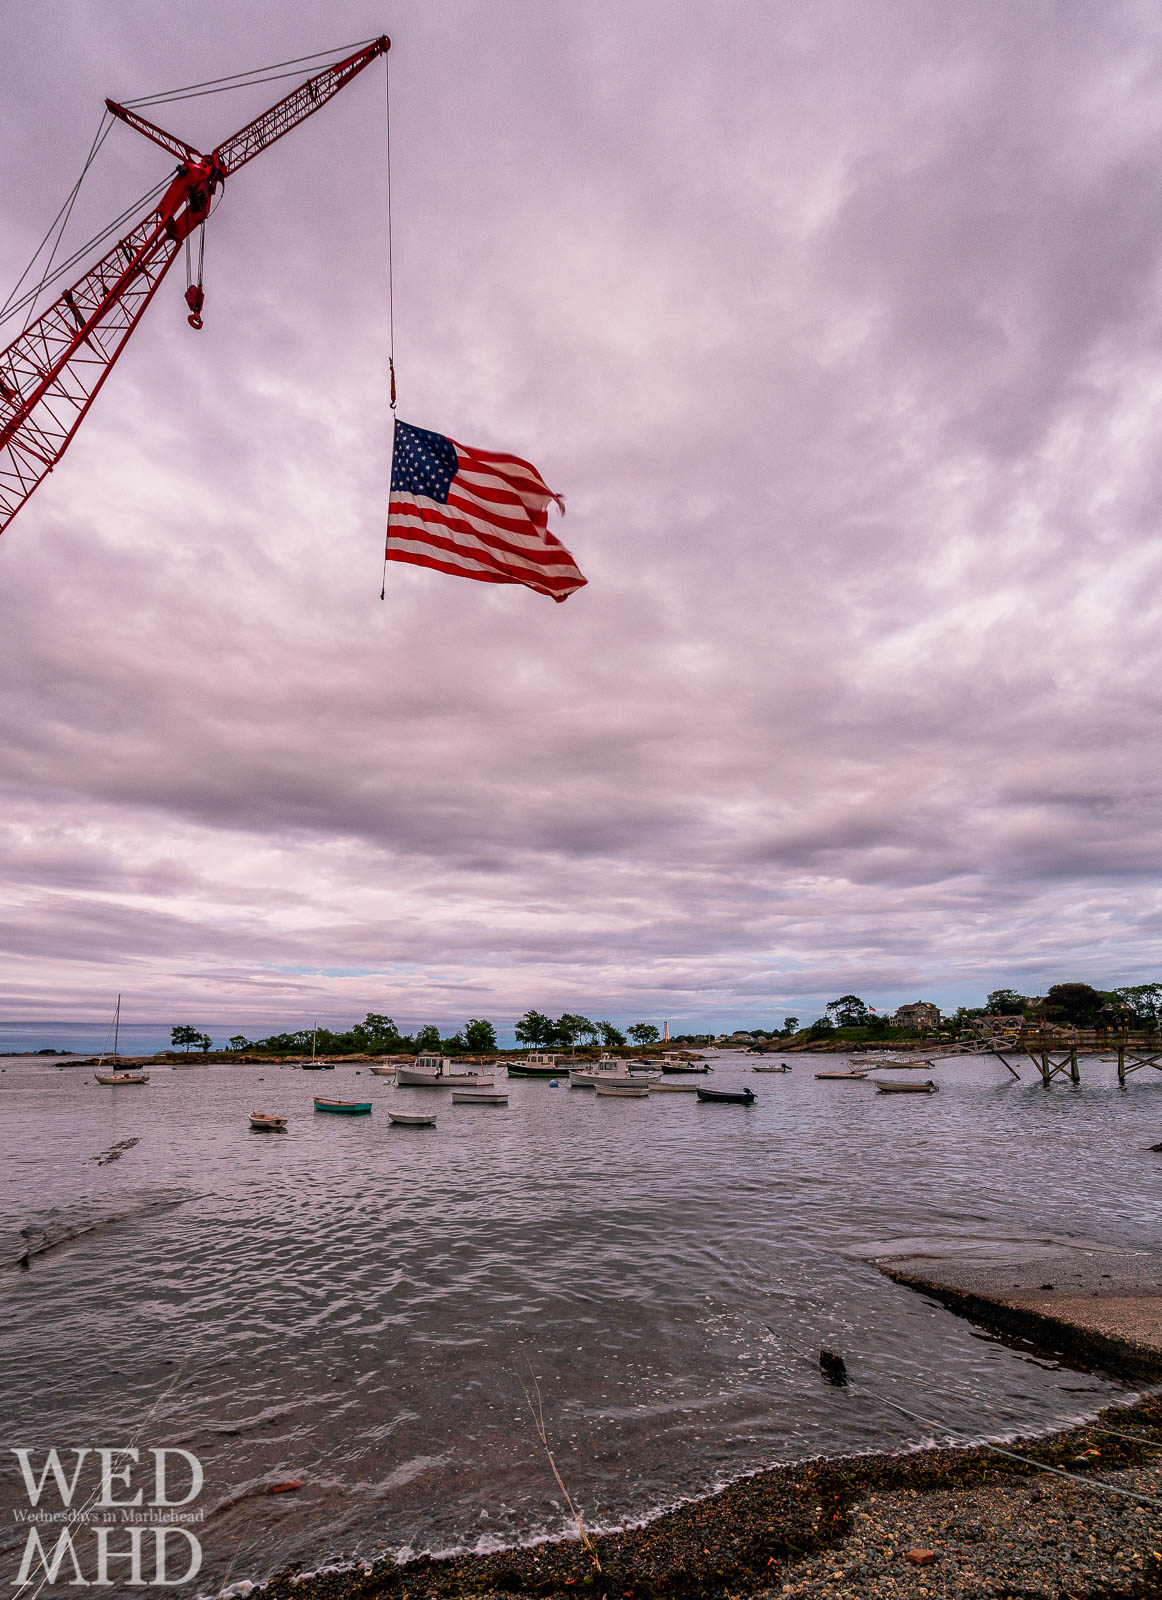 Old glory flies from the crane at Little Harbor with boats filling the protected waters and Marblehead Light in the distance